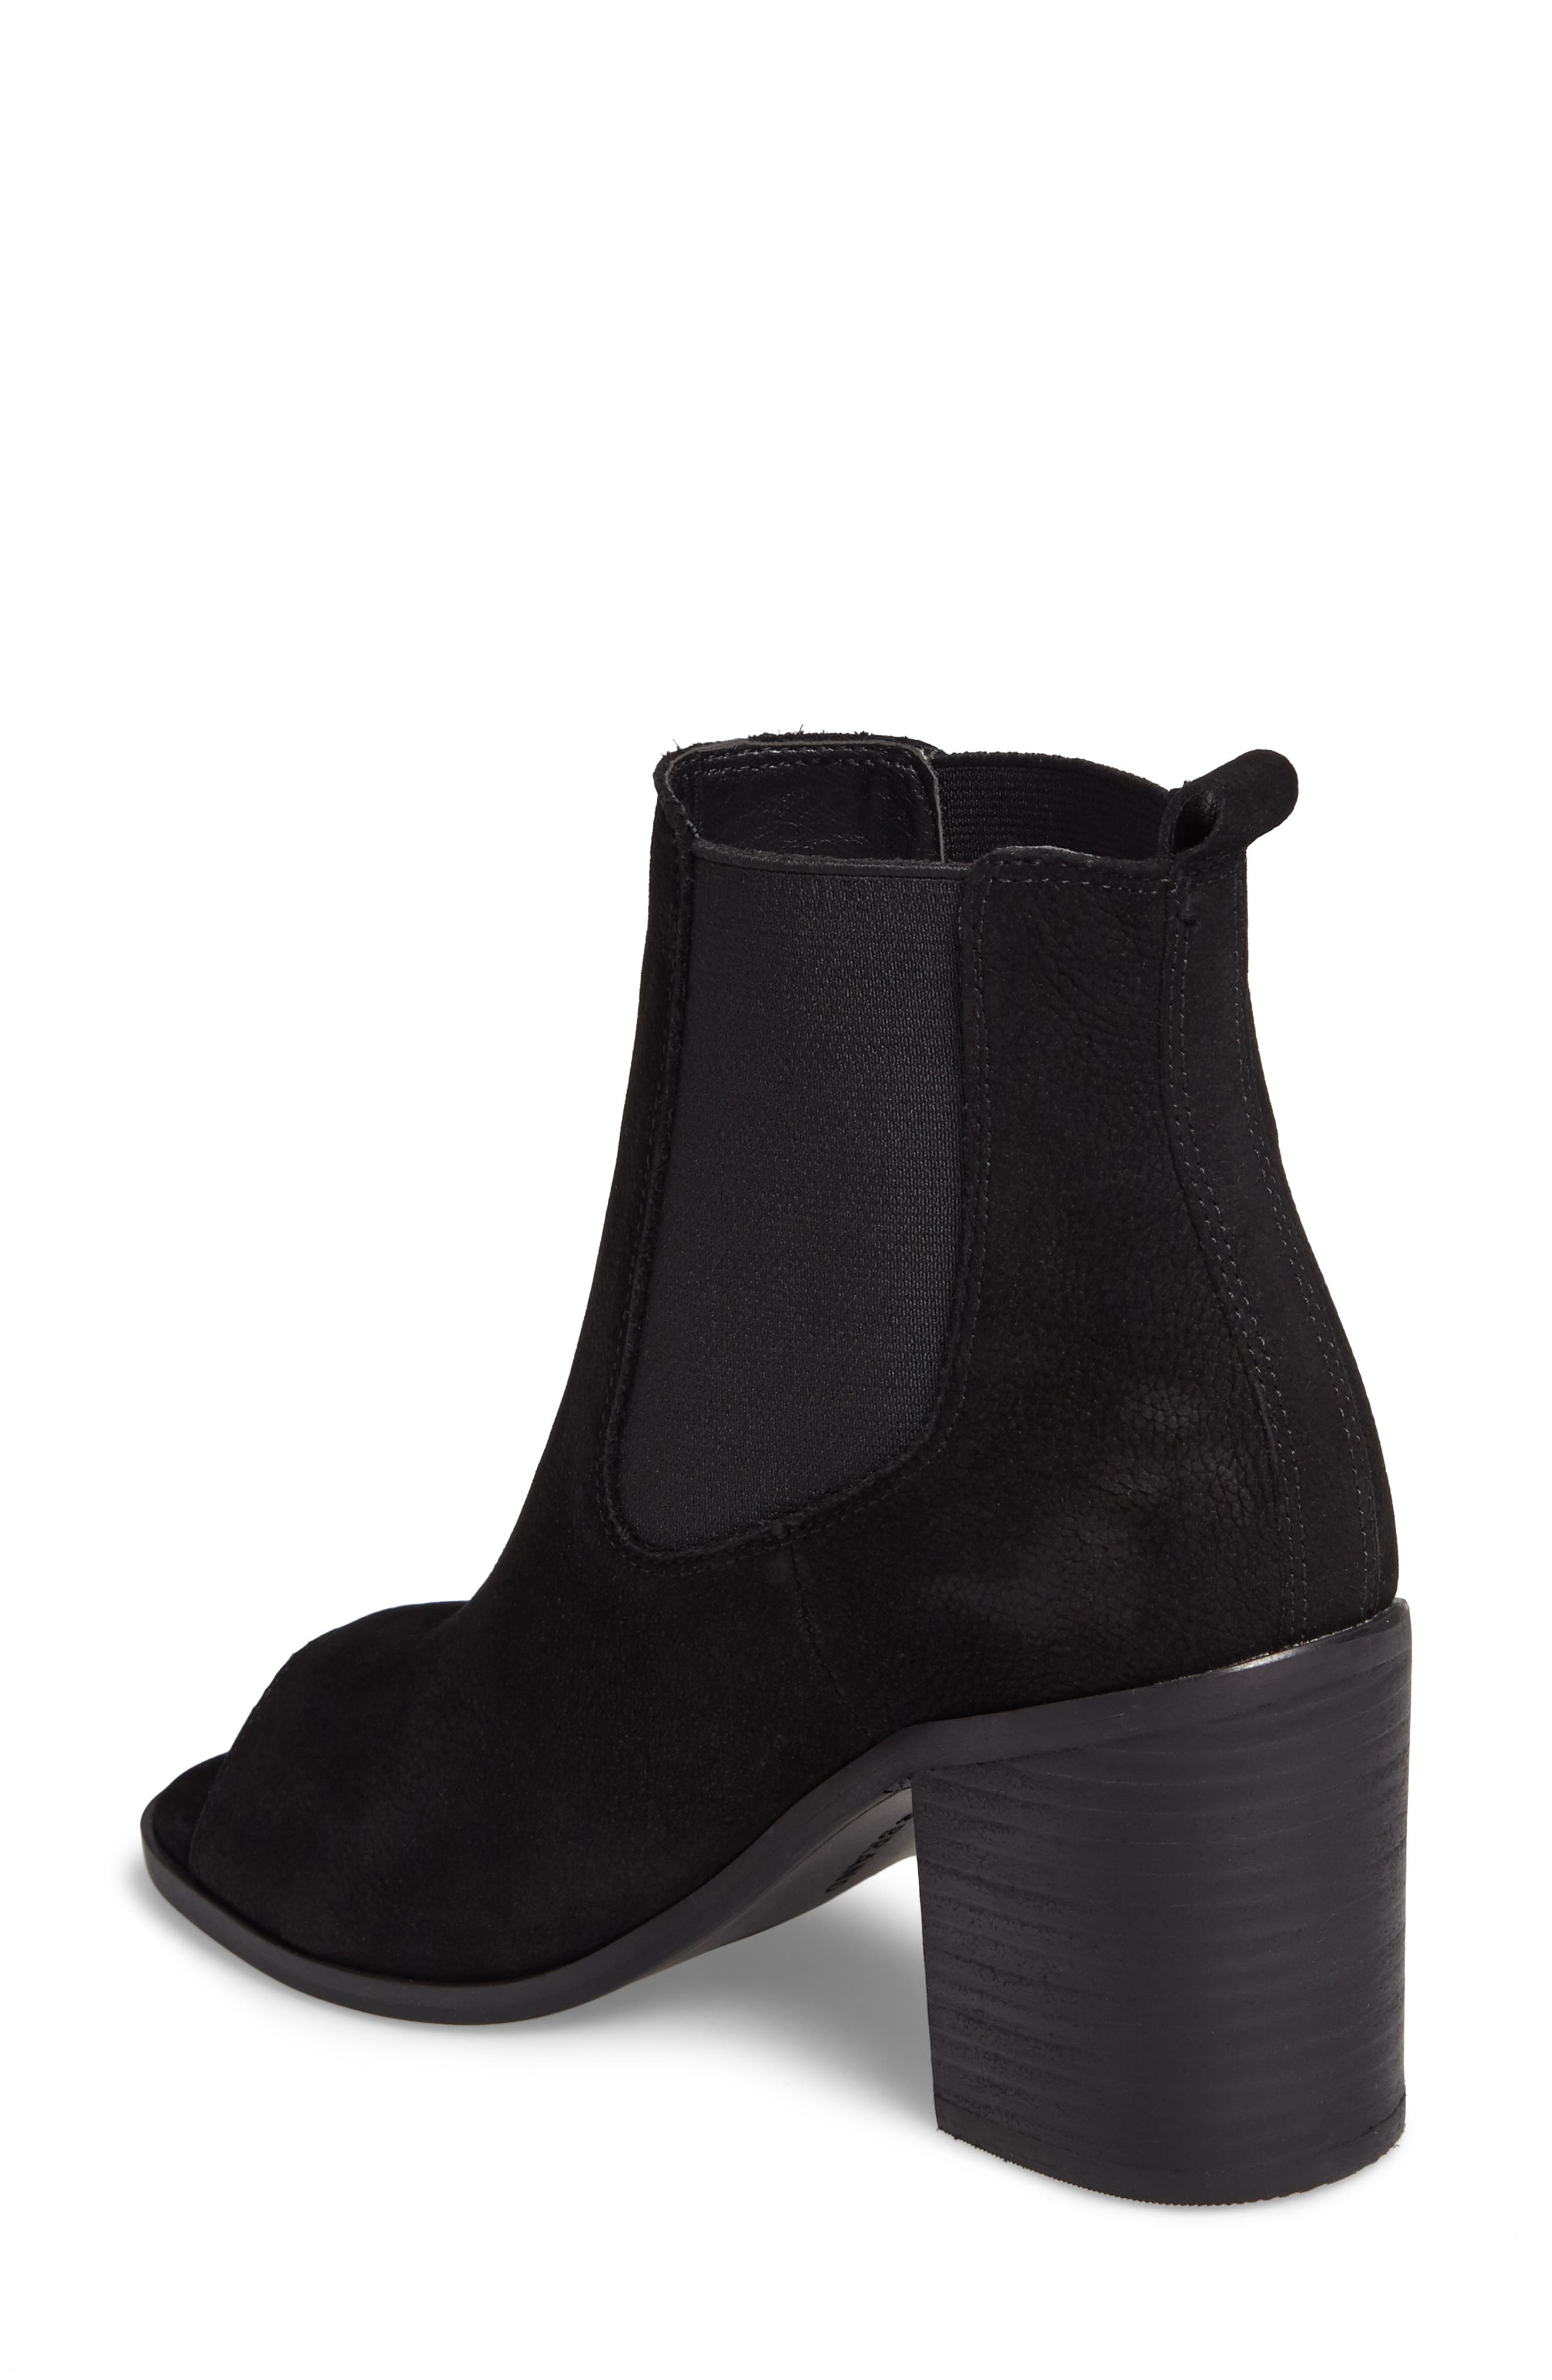 Kassidy Open Toe Chelsea Bootie,                             Alternate thumbnail 2, color,                             Black Leather